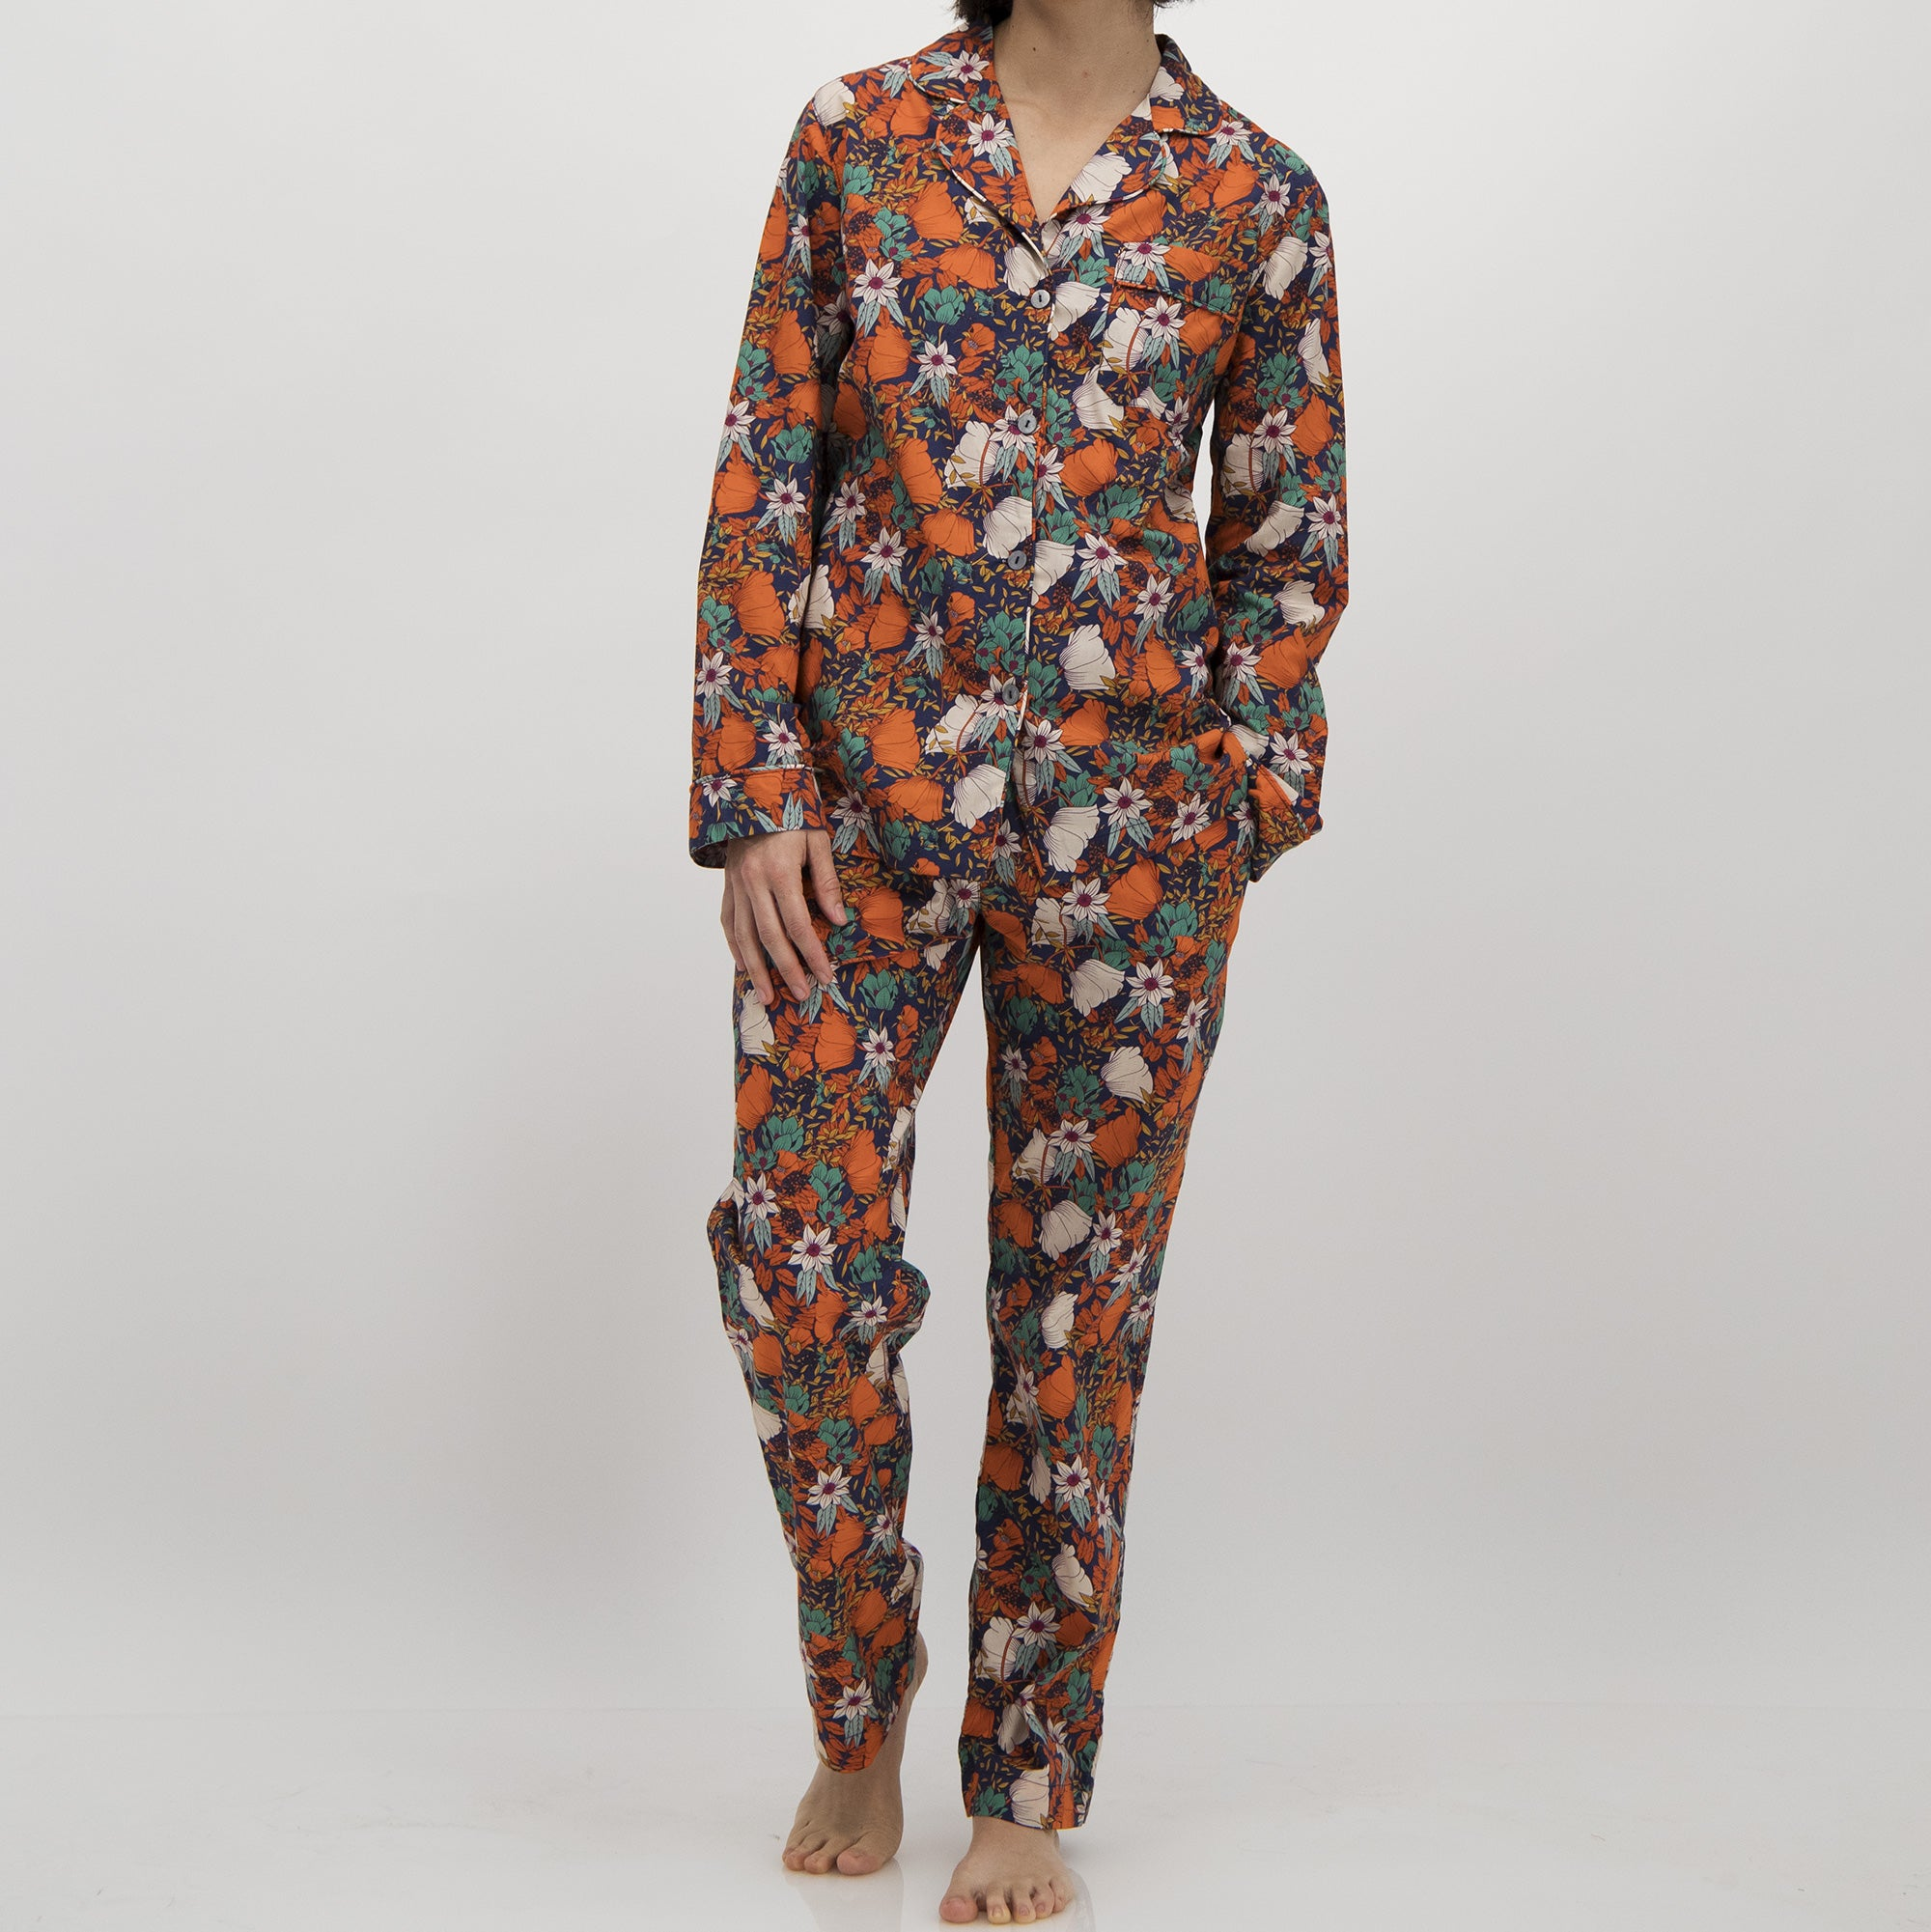 Womens Long Pyjamas Madison Square Garden - Woodstock Laundry